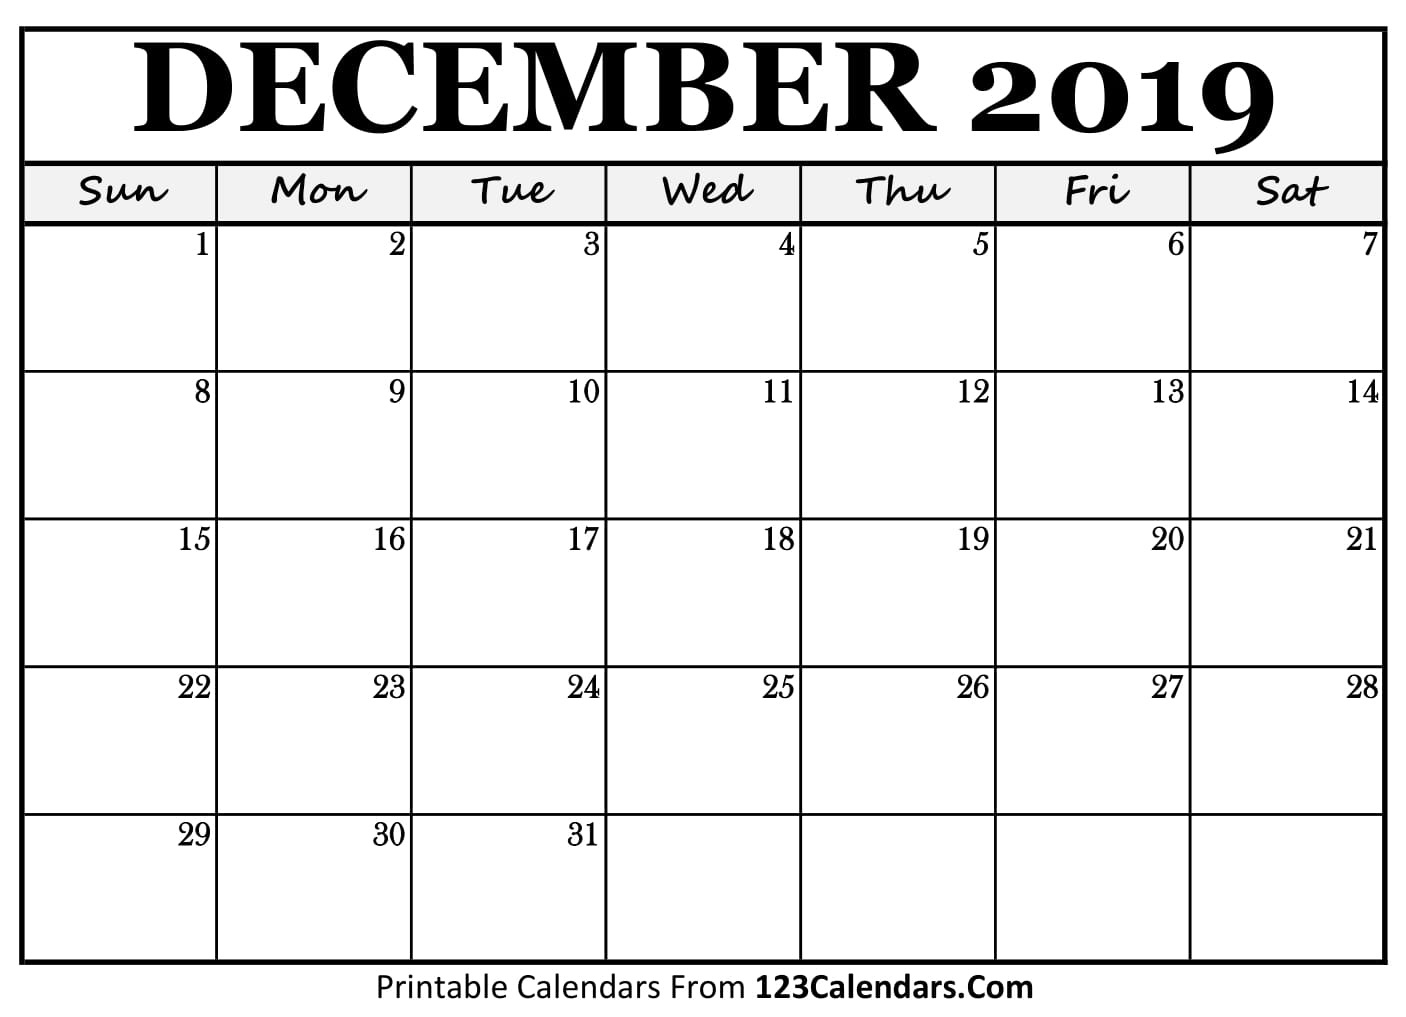 graphic regarding Printable Monthly Calendar December named December 2019 Printable Calendar